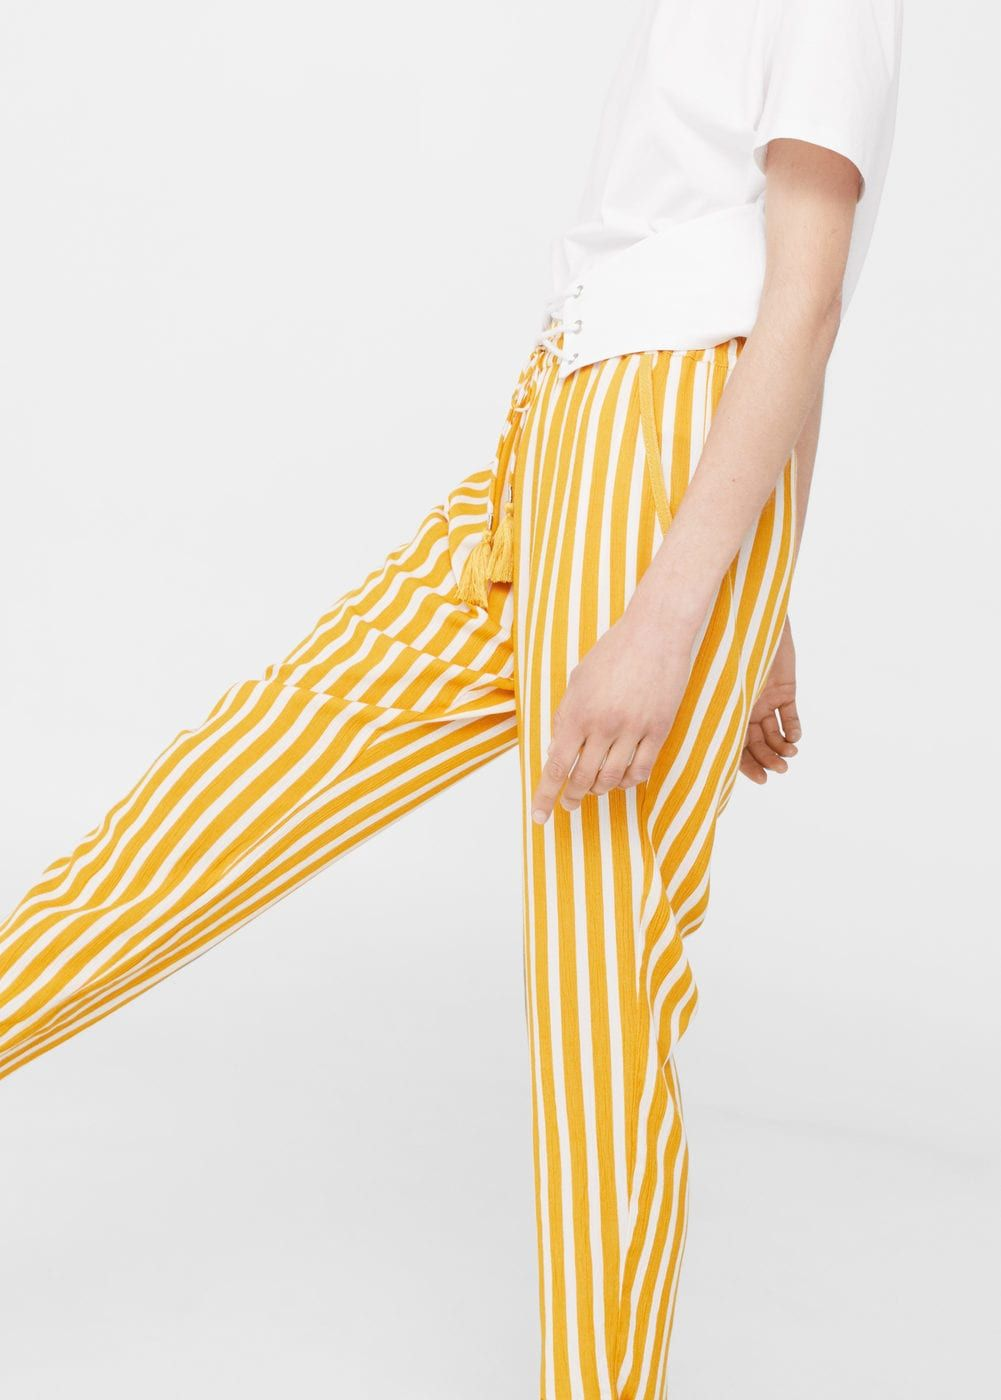 uk cheap sale discover latest trends structural disablities Yellow for days   Clothes That Can Party   Yellow pants ...